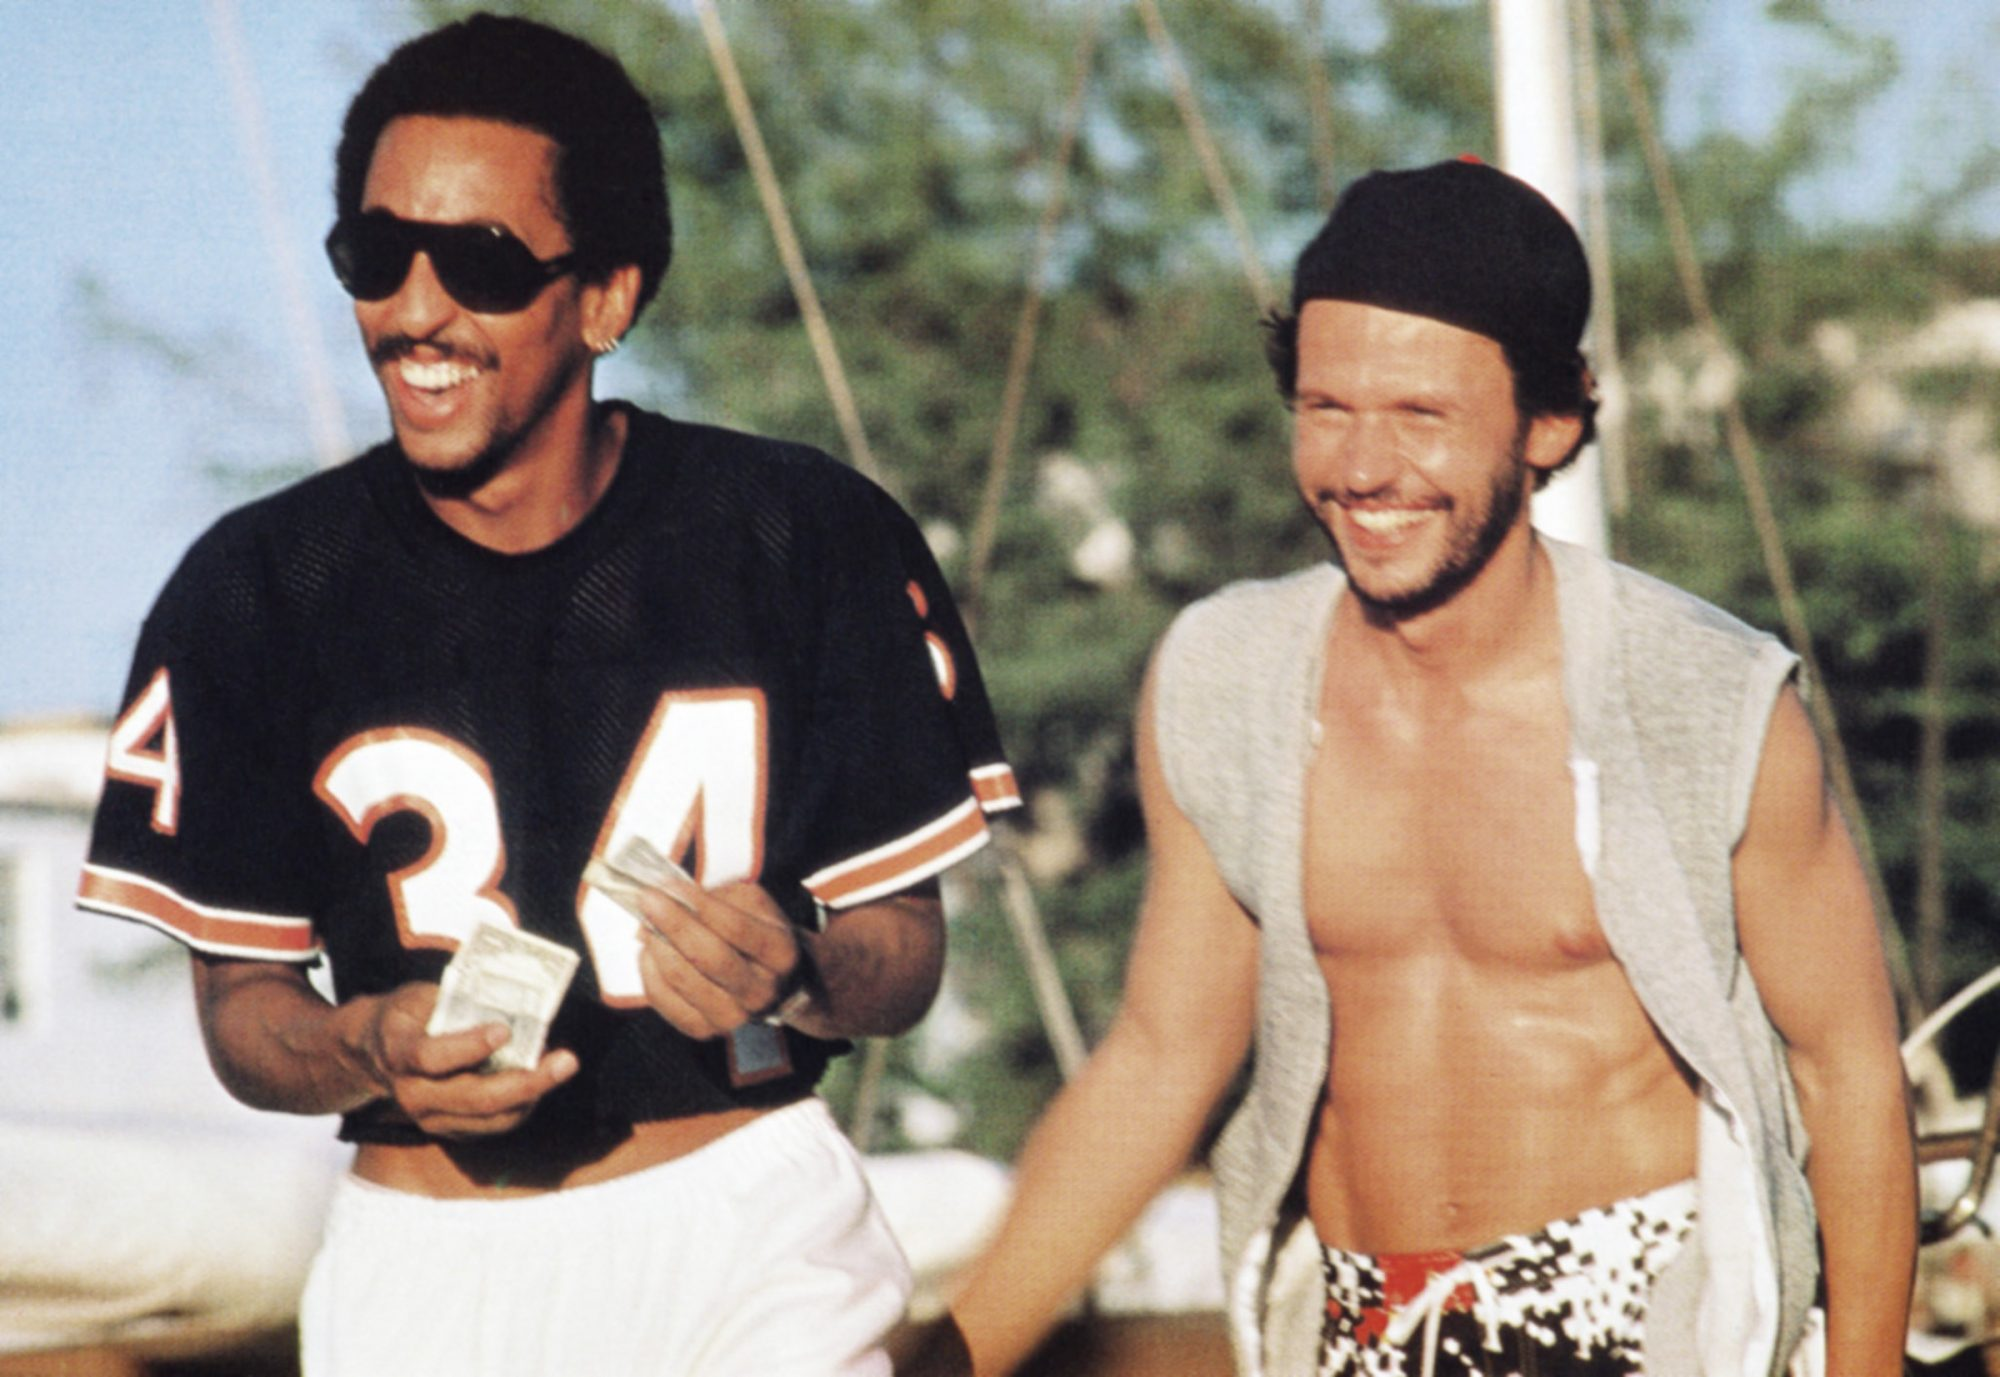 RUNNING SCARED, from left: Gregory Hines, Billy Crystal, 1986, © MGM/courtesy Everett Collection